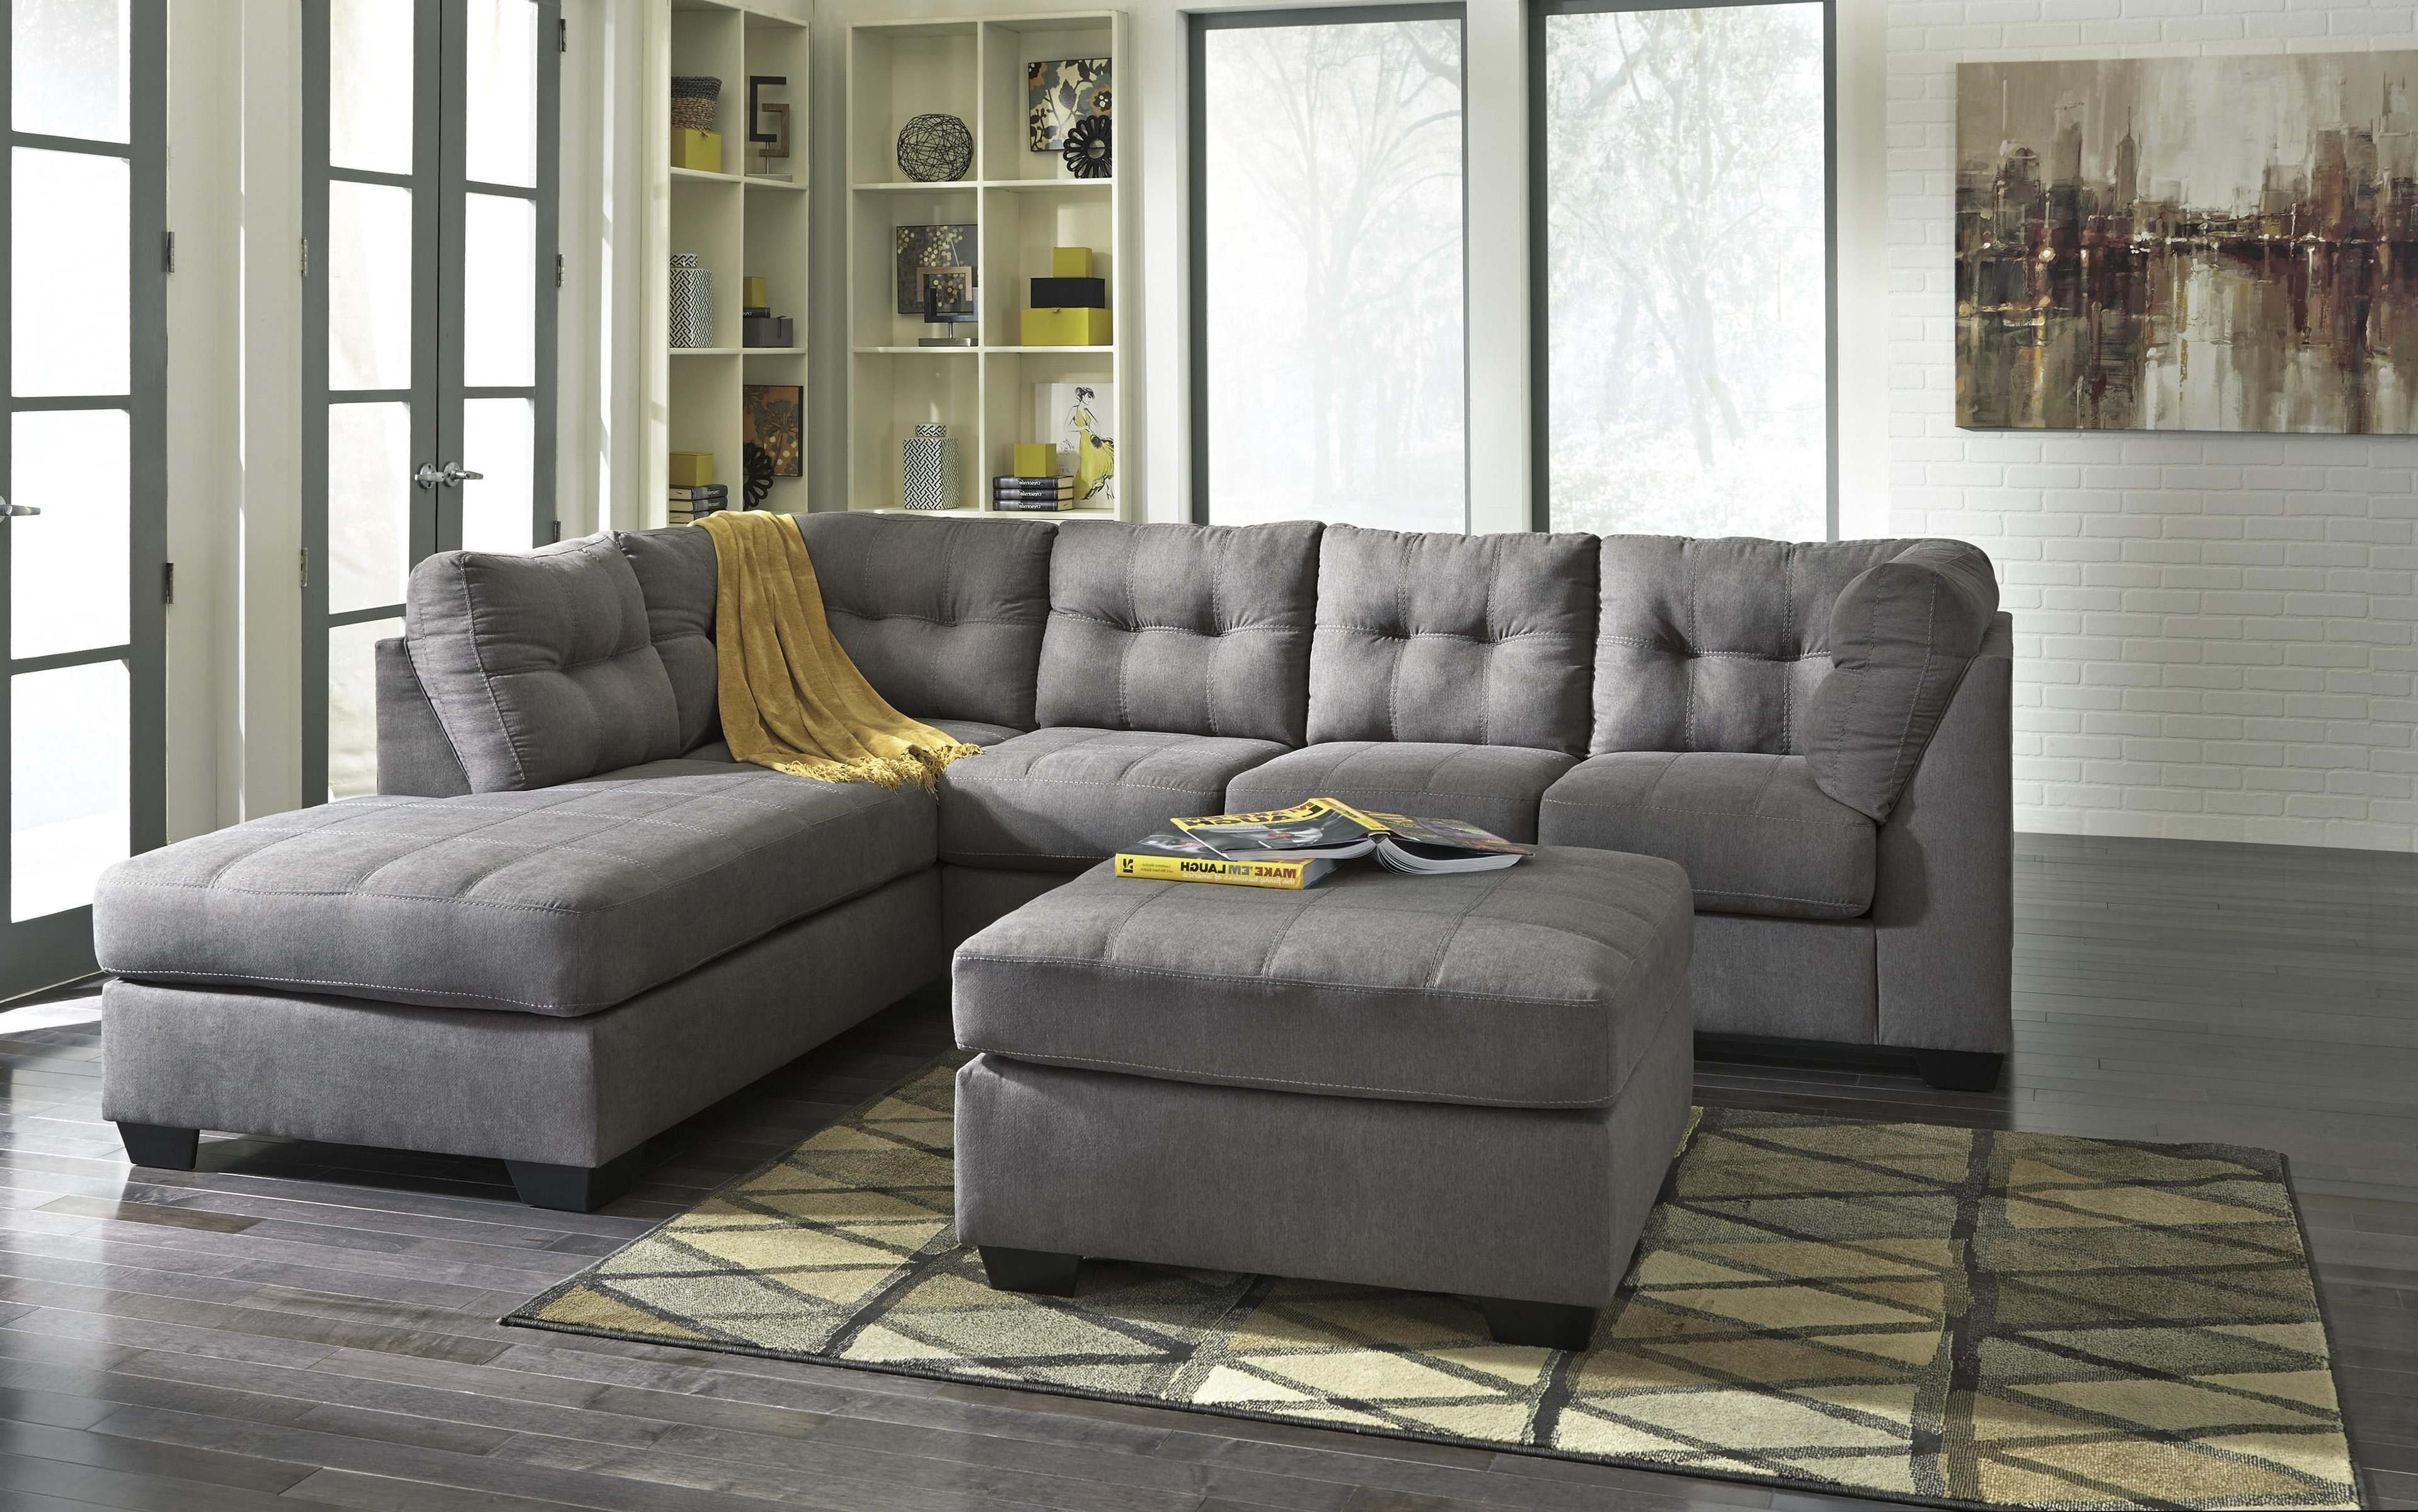 Family Room Intended For Eau Claire Wi Sectional Sofas (View 6 of 20)